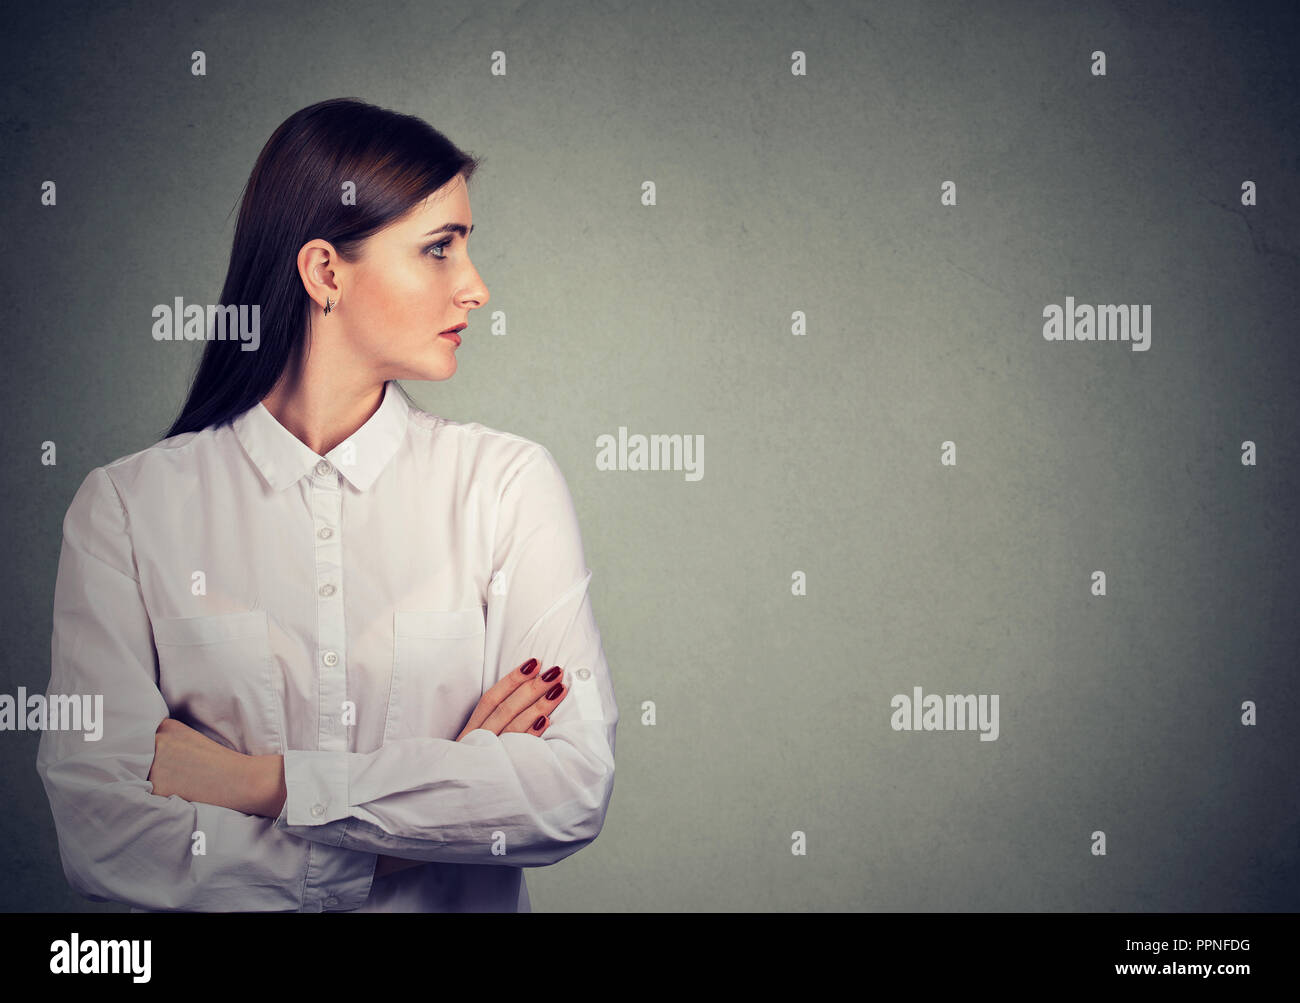 Young brunette in white shirt holding arms crossed and looking away on gray background - Stock Image